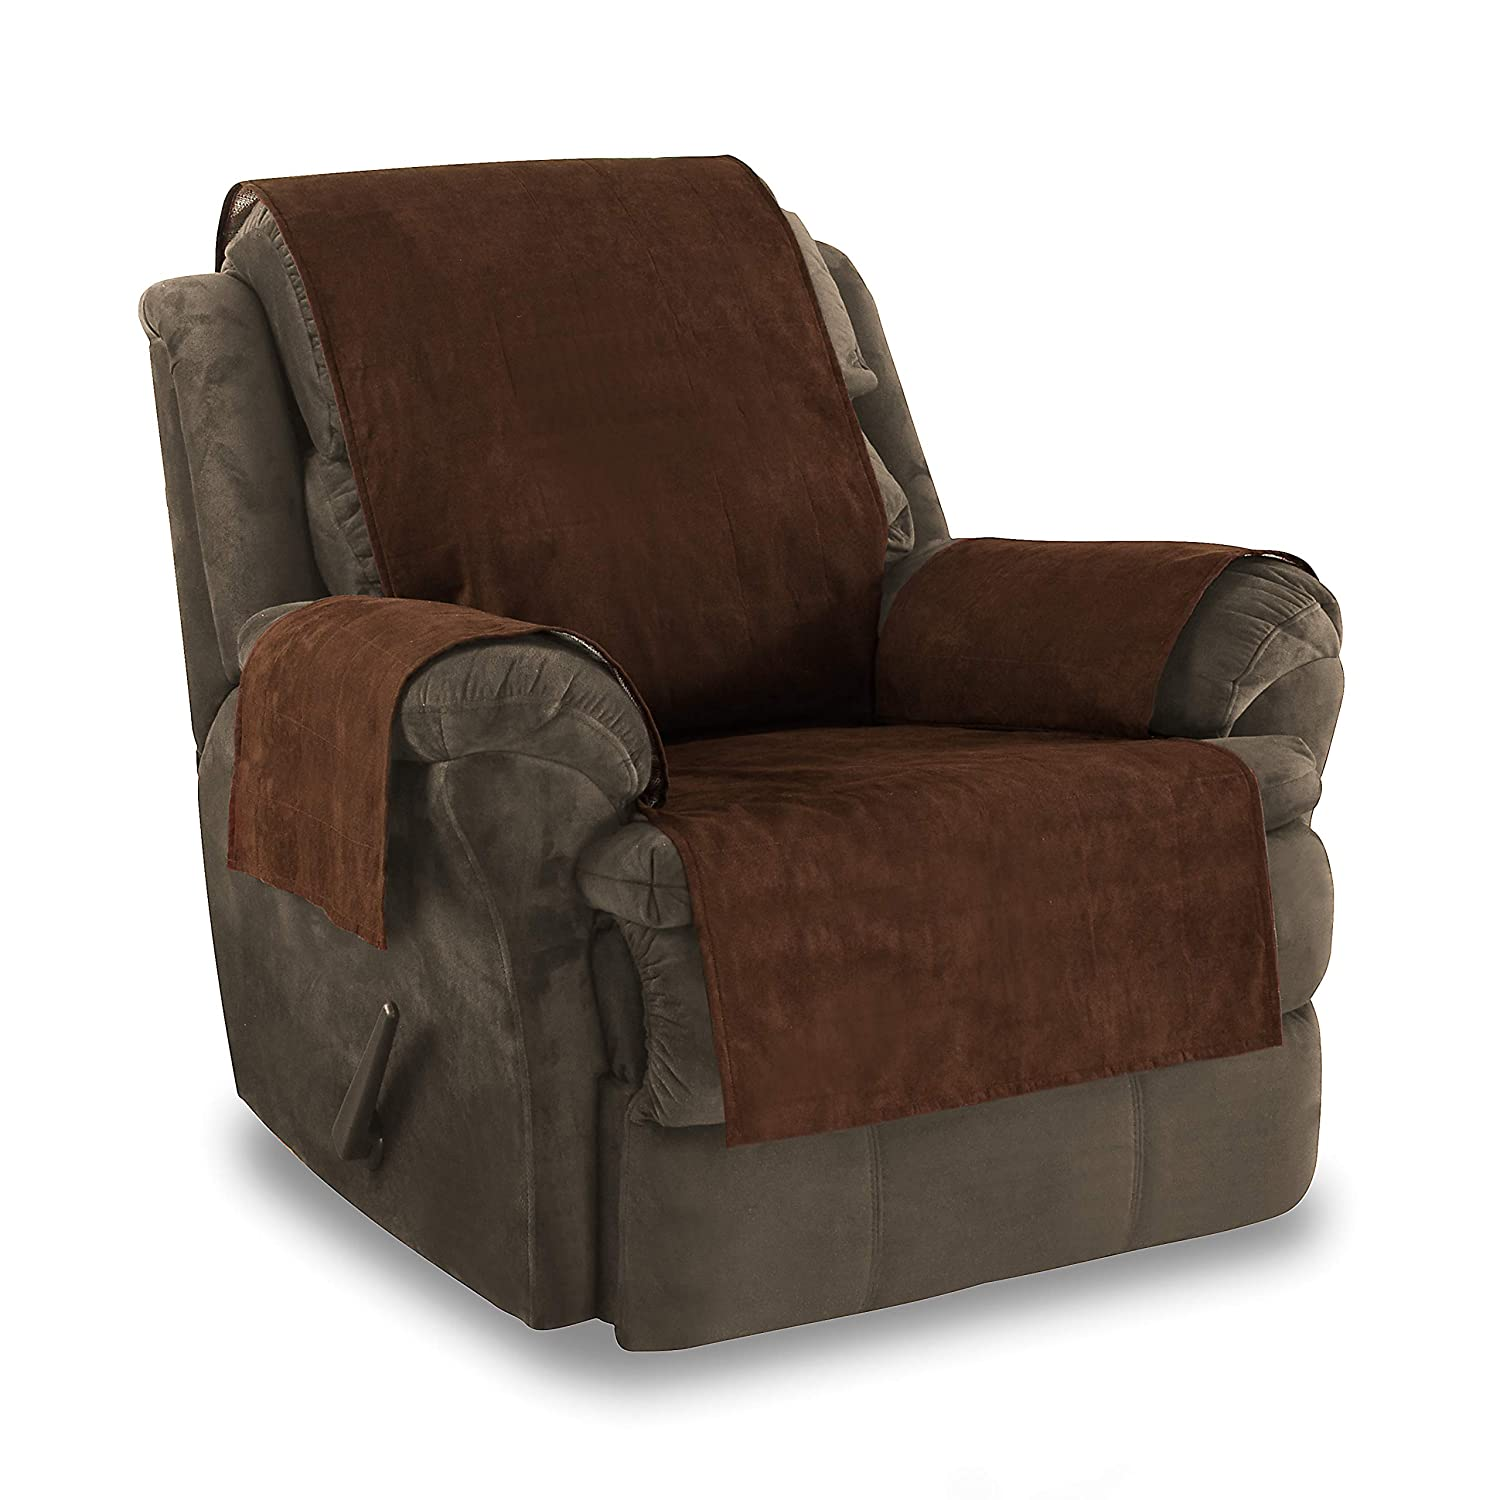 Excellent Details About Large Recliner Chair Arm Cover Xl Pet Furniture Slipcover Protector Anti Slip Customarchery Wood Chair Design Ideas Customarcherynet